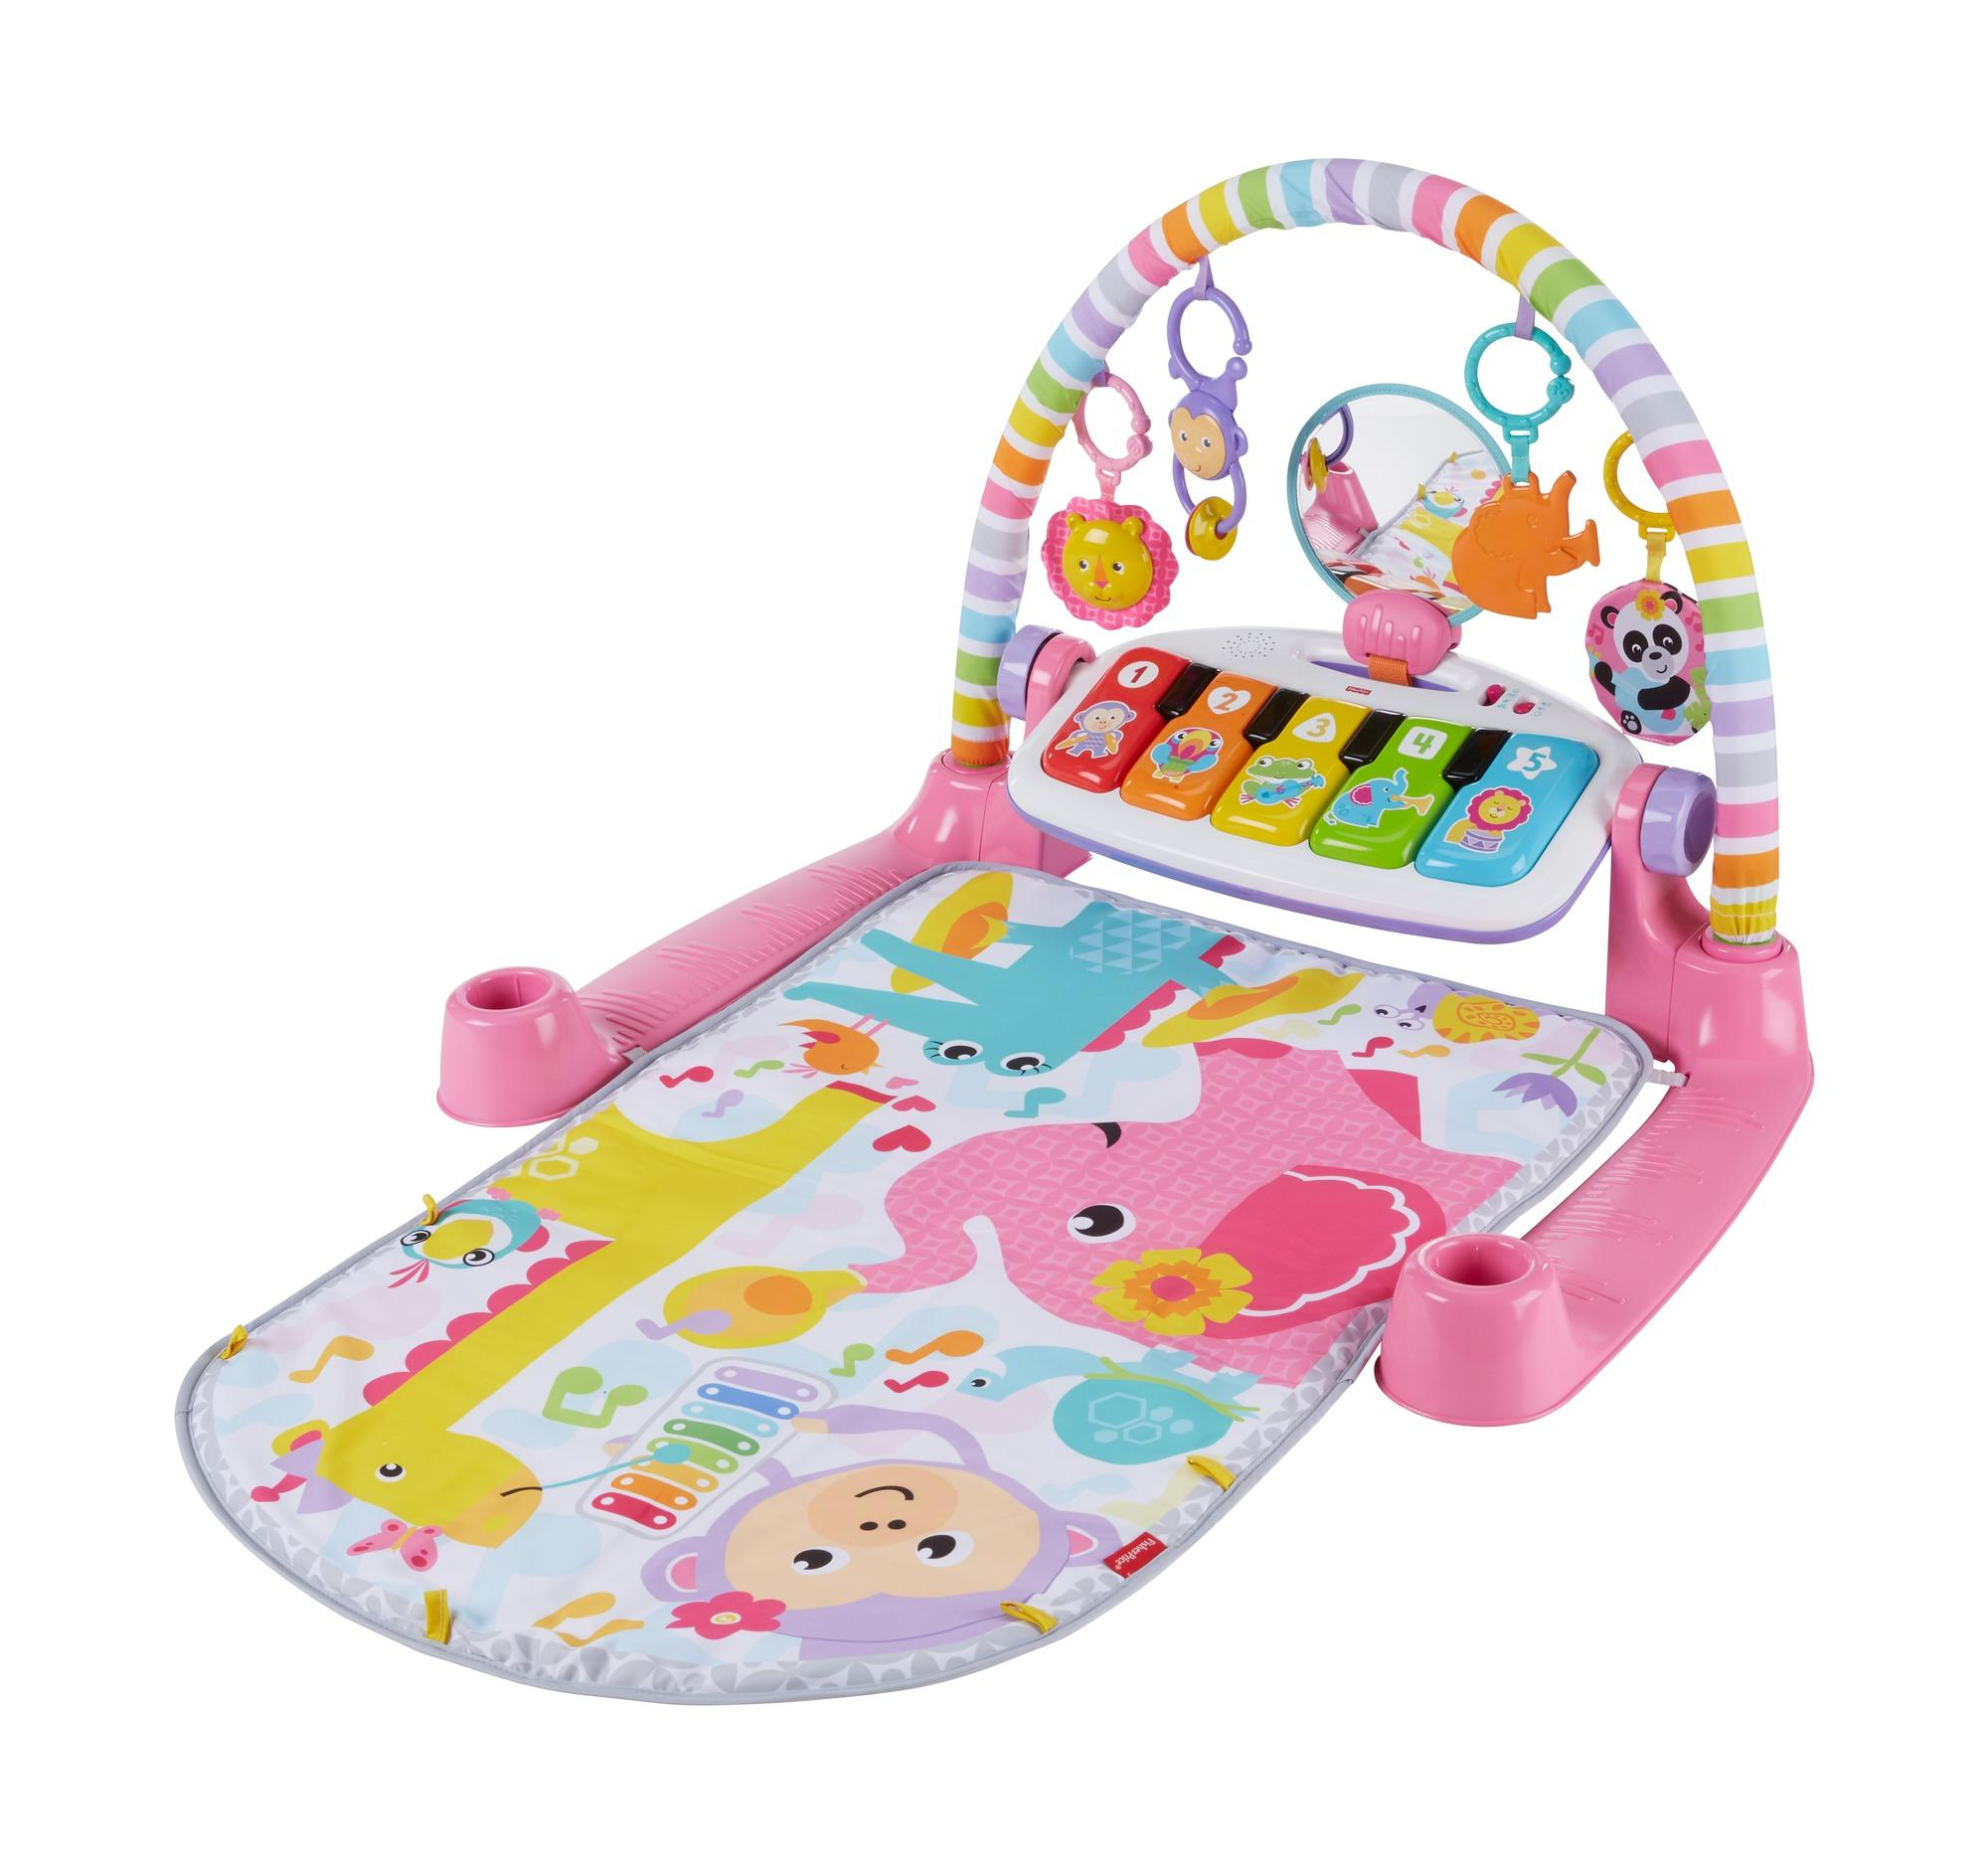 Amazon Com Fisher Price Deluxe Kick N Play Piano Gym